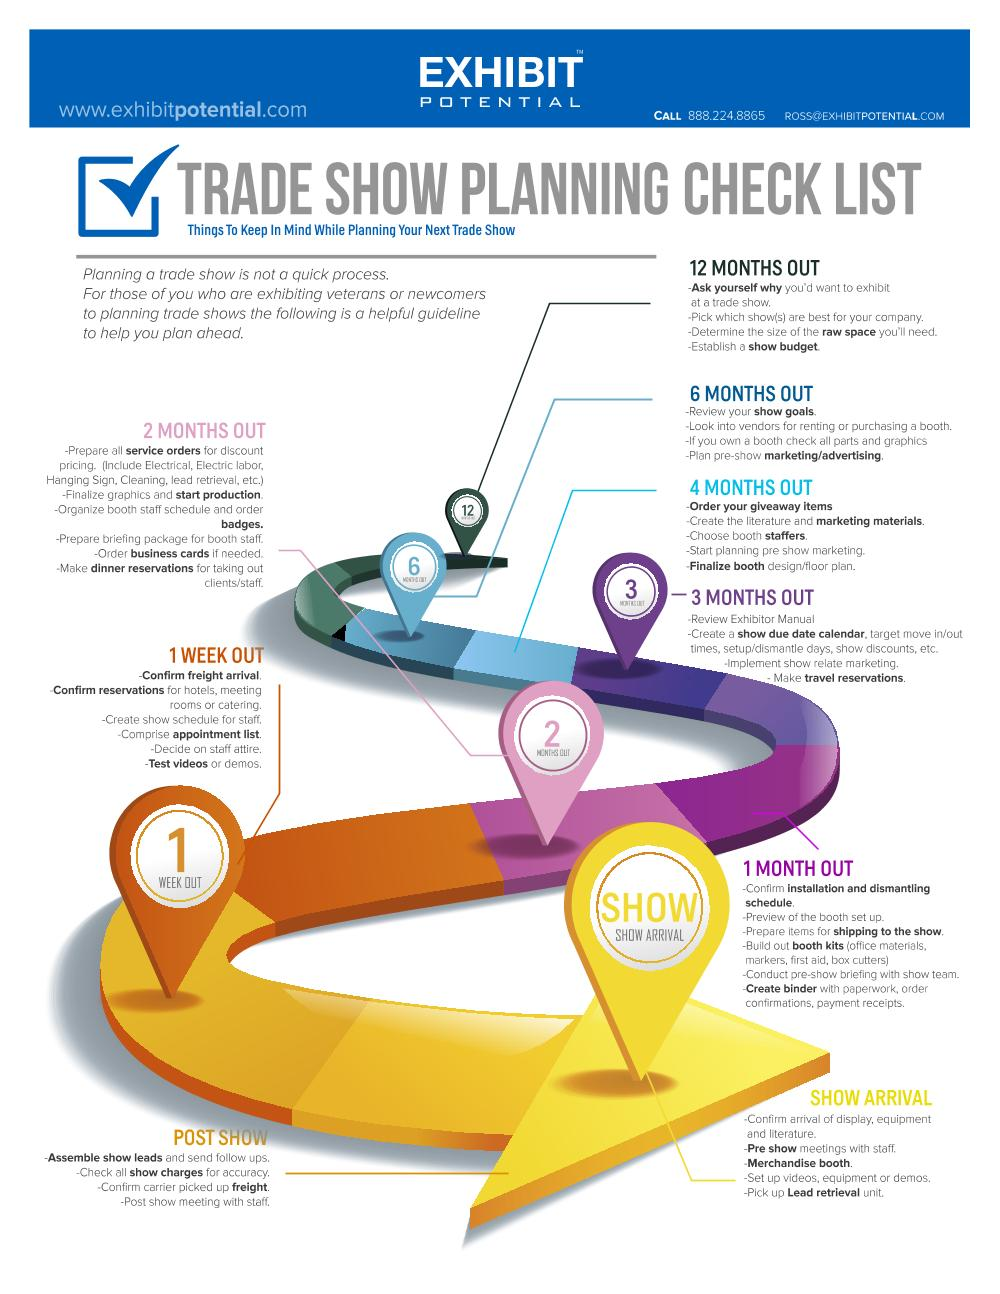 Trade Show Planning Check List